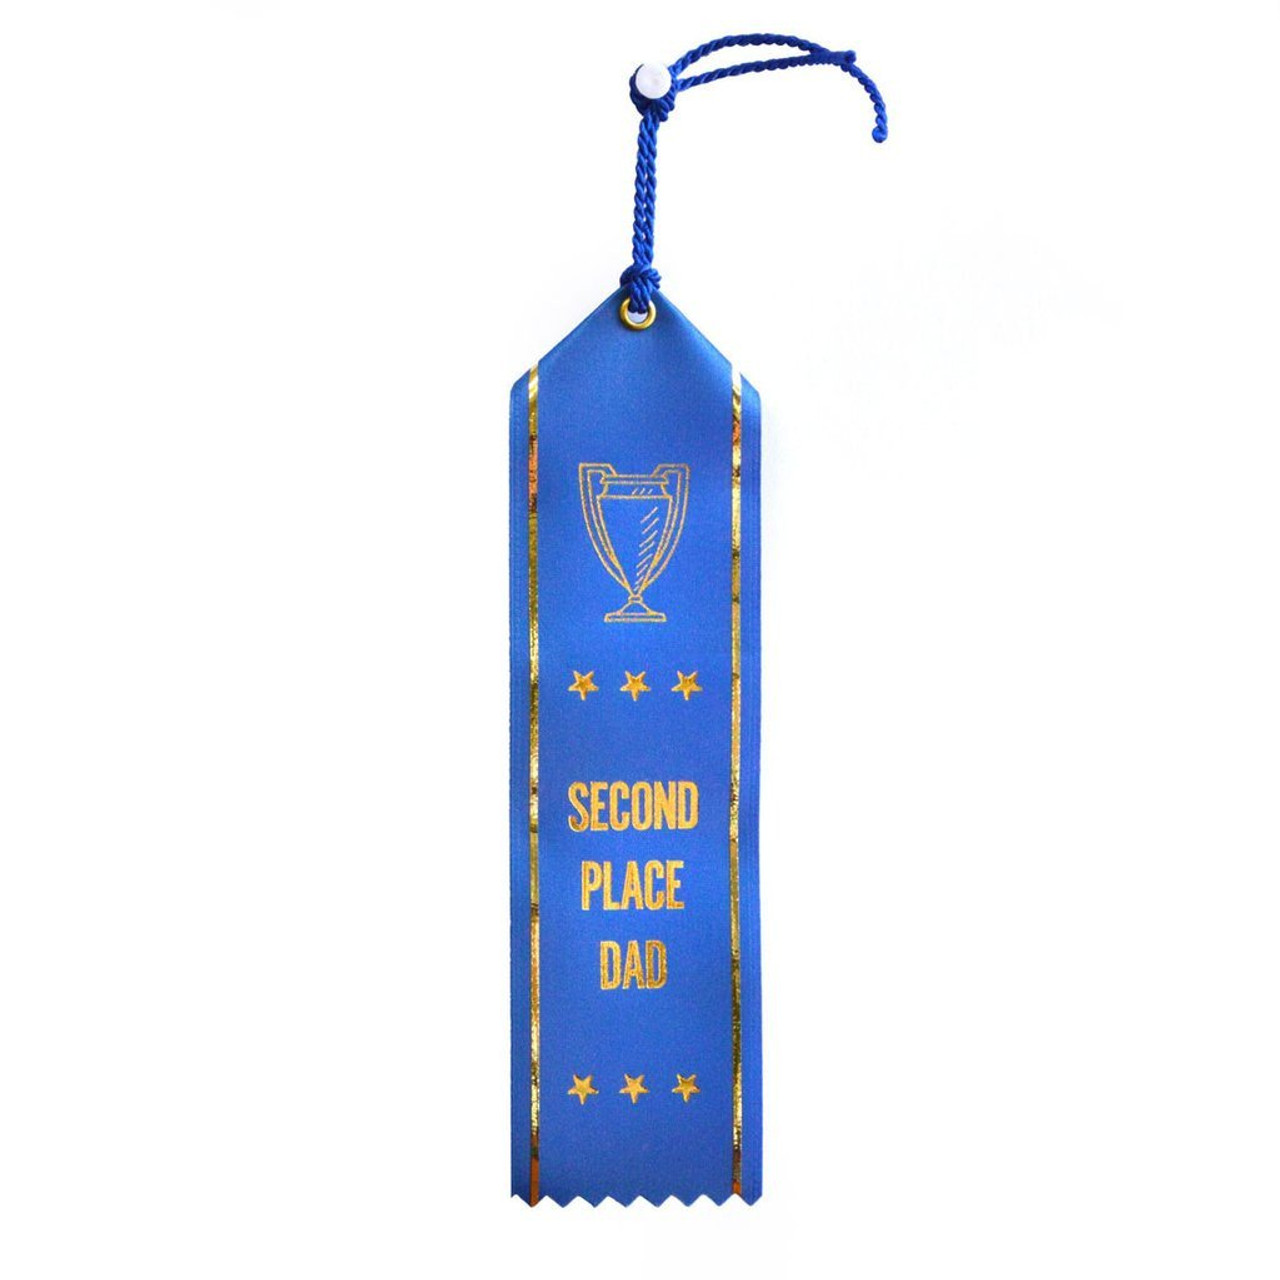 Second Place Dad Ribbon